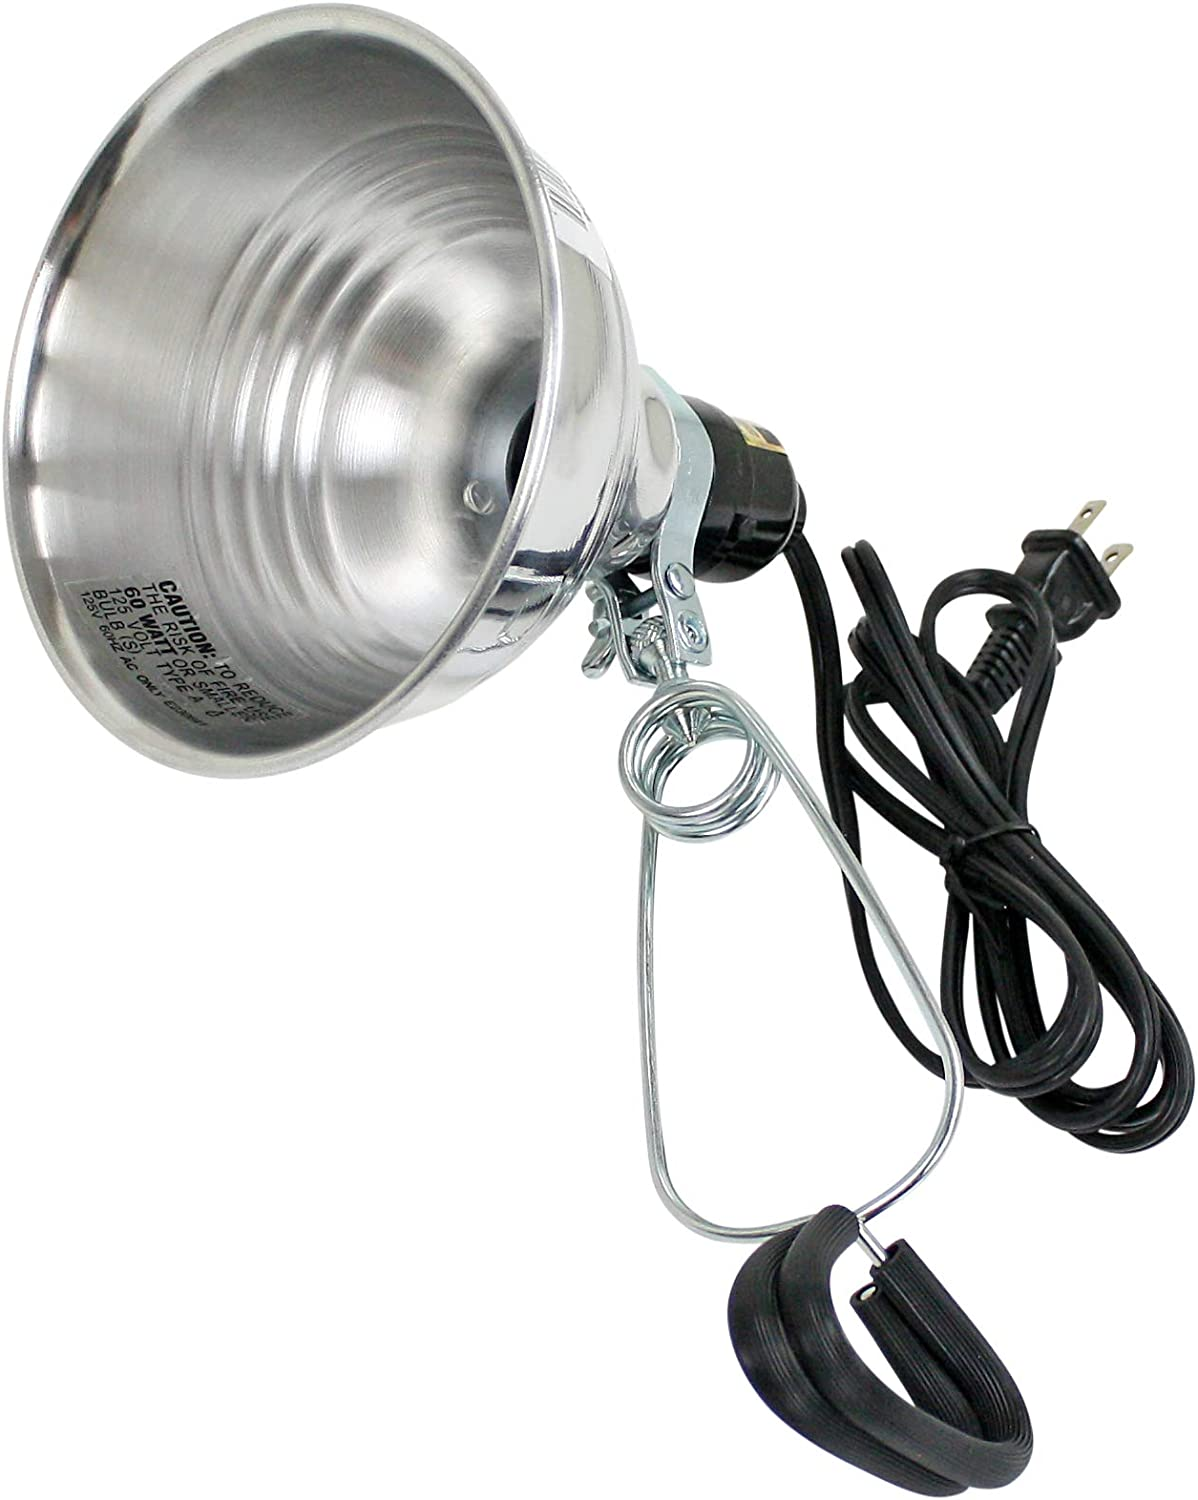 5.5-Inch Prime Wire and Cable Prime CL060506 Reflector Clamp Lamp with 6-Feet 18//2 SPT-2 Cord